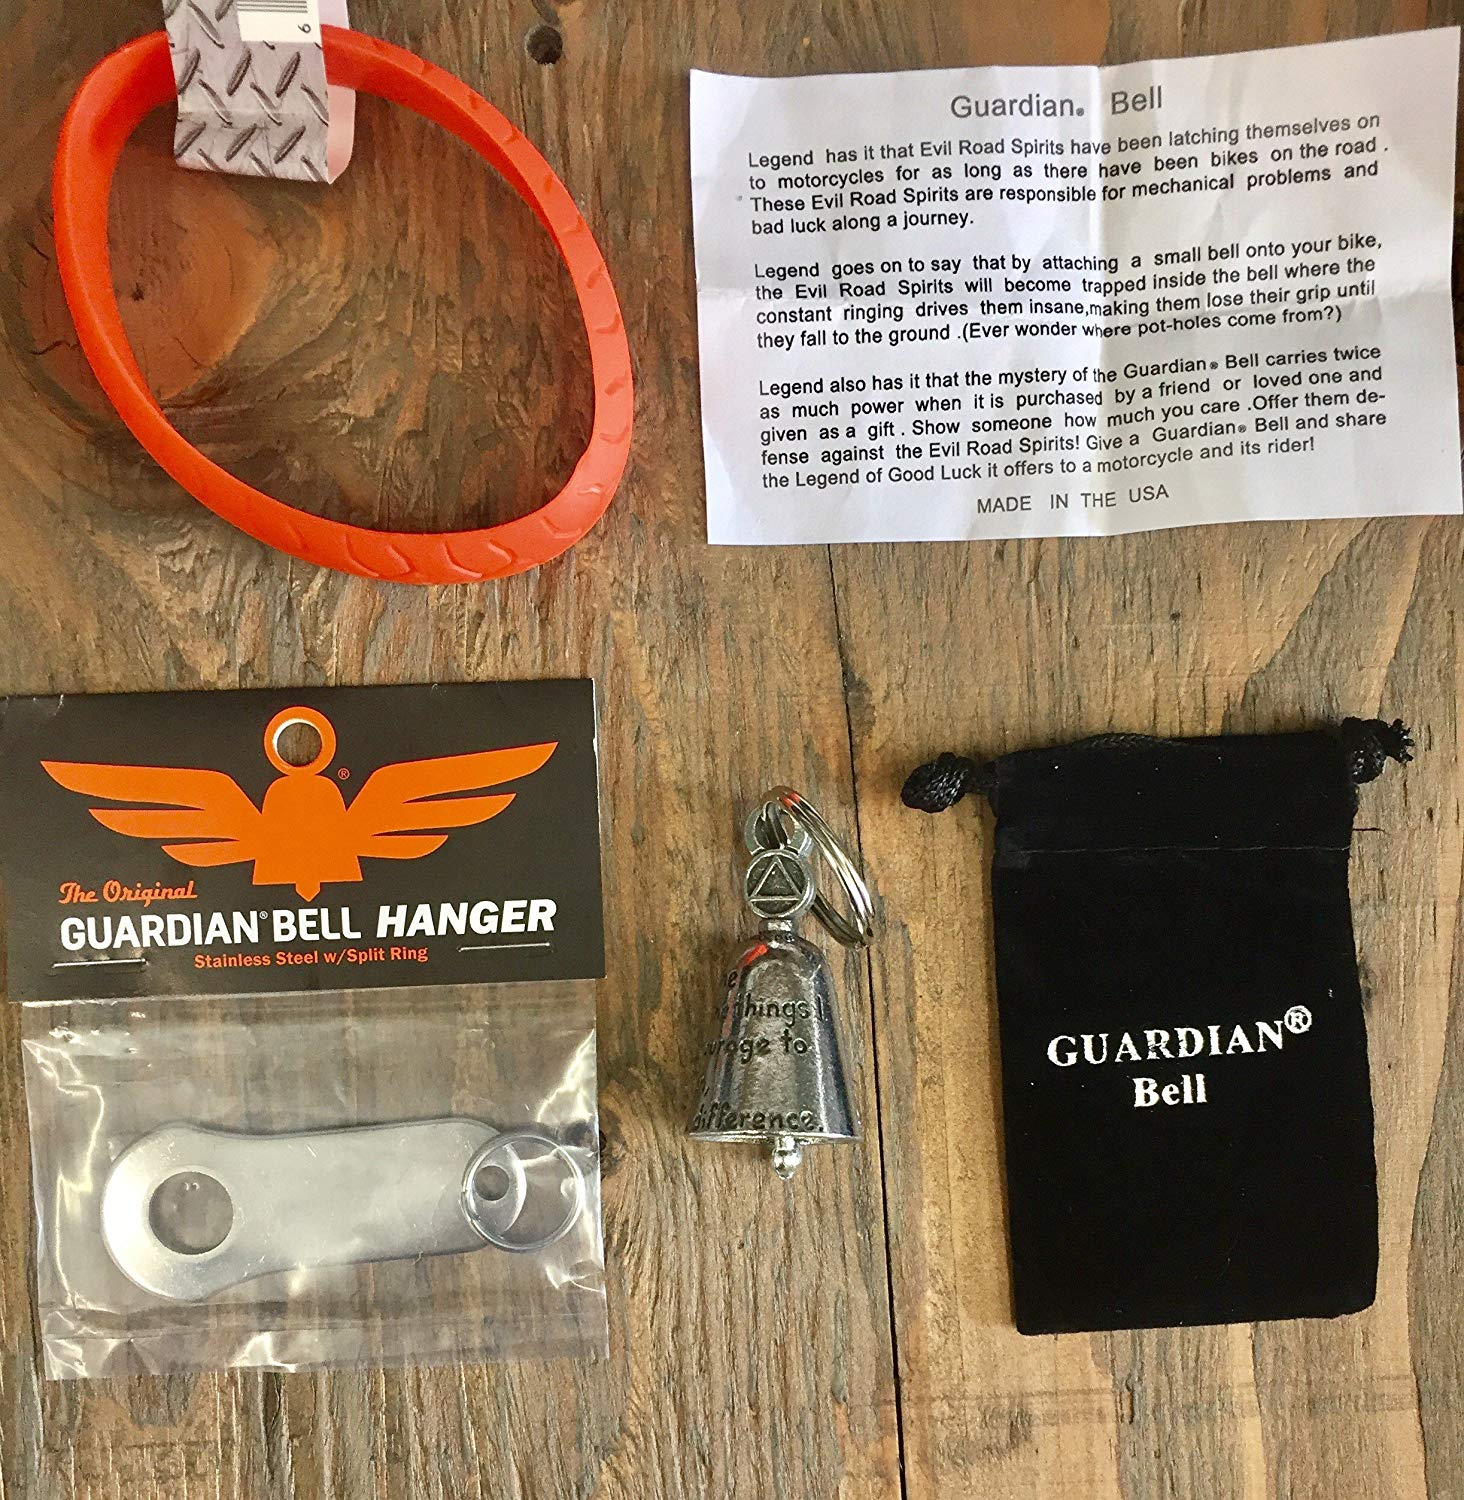 Guardian® Bell ALCOHOL ANONYMOUS COMPLETE MOTORCYCLE KIT W/HANGER & WRISTBAND